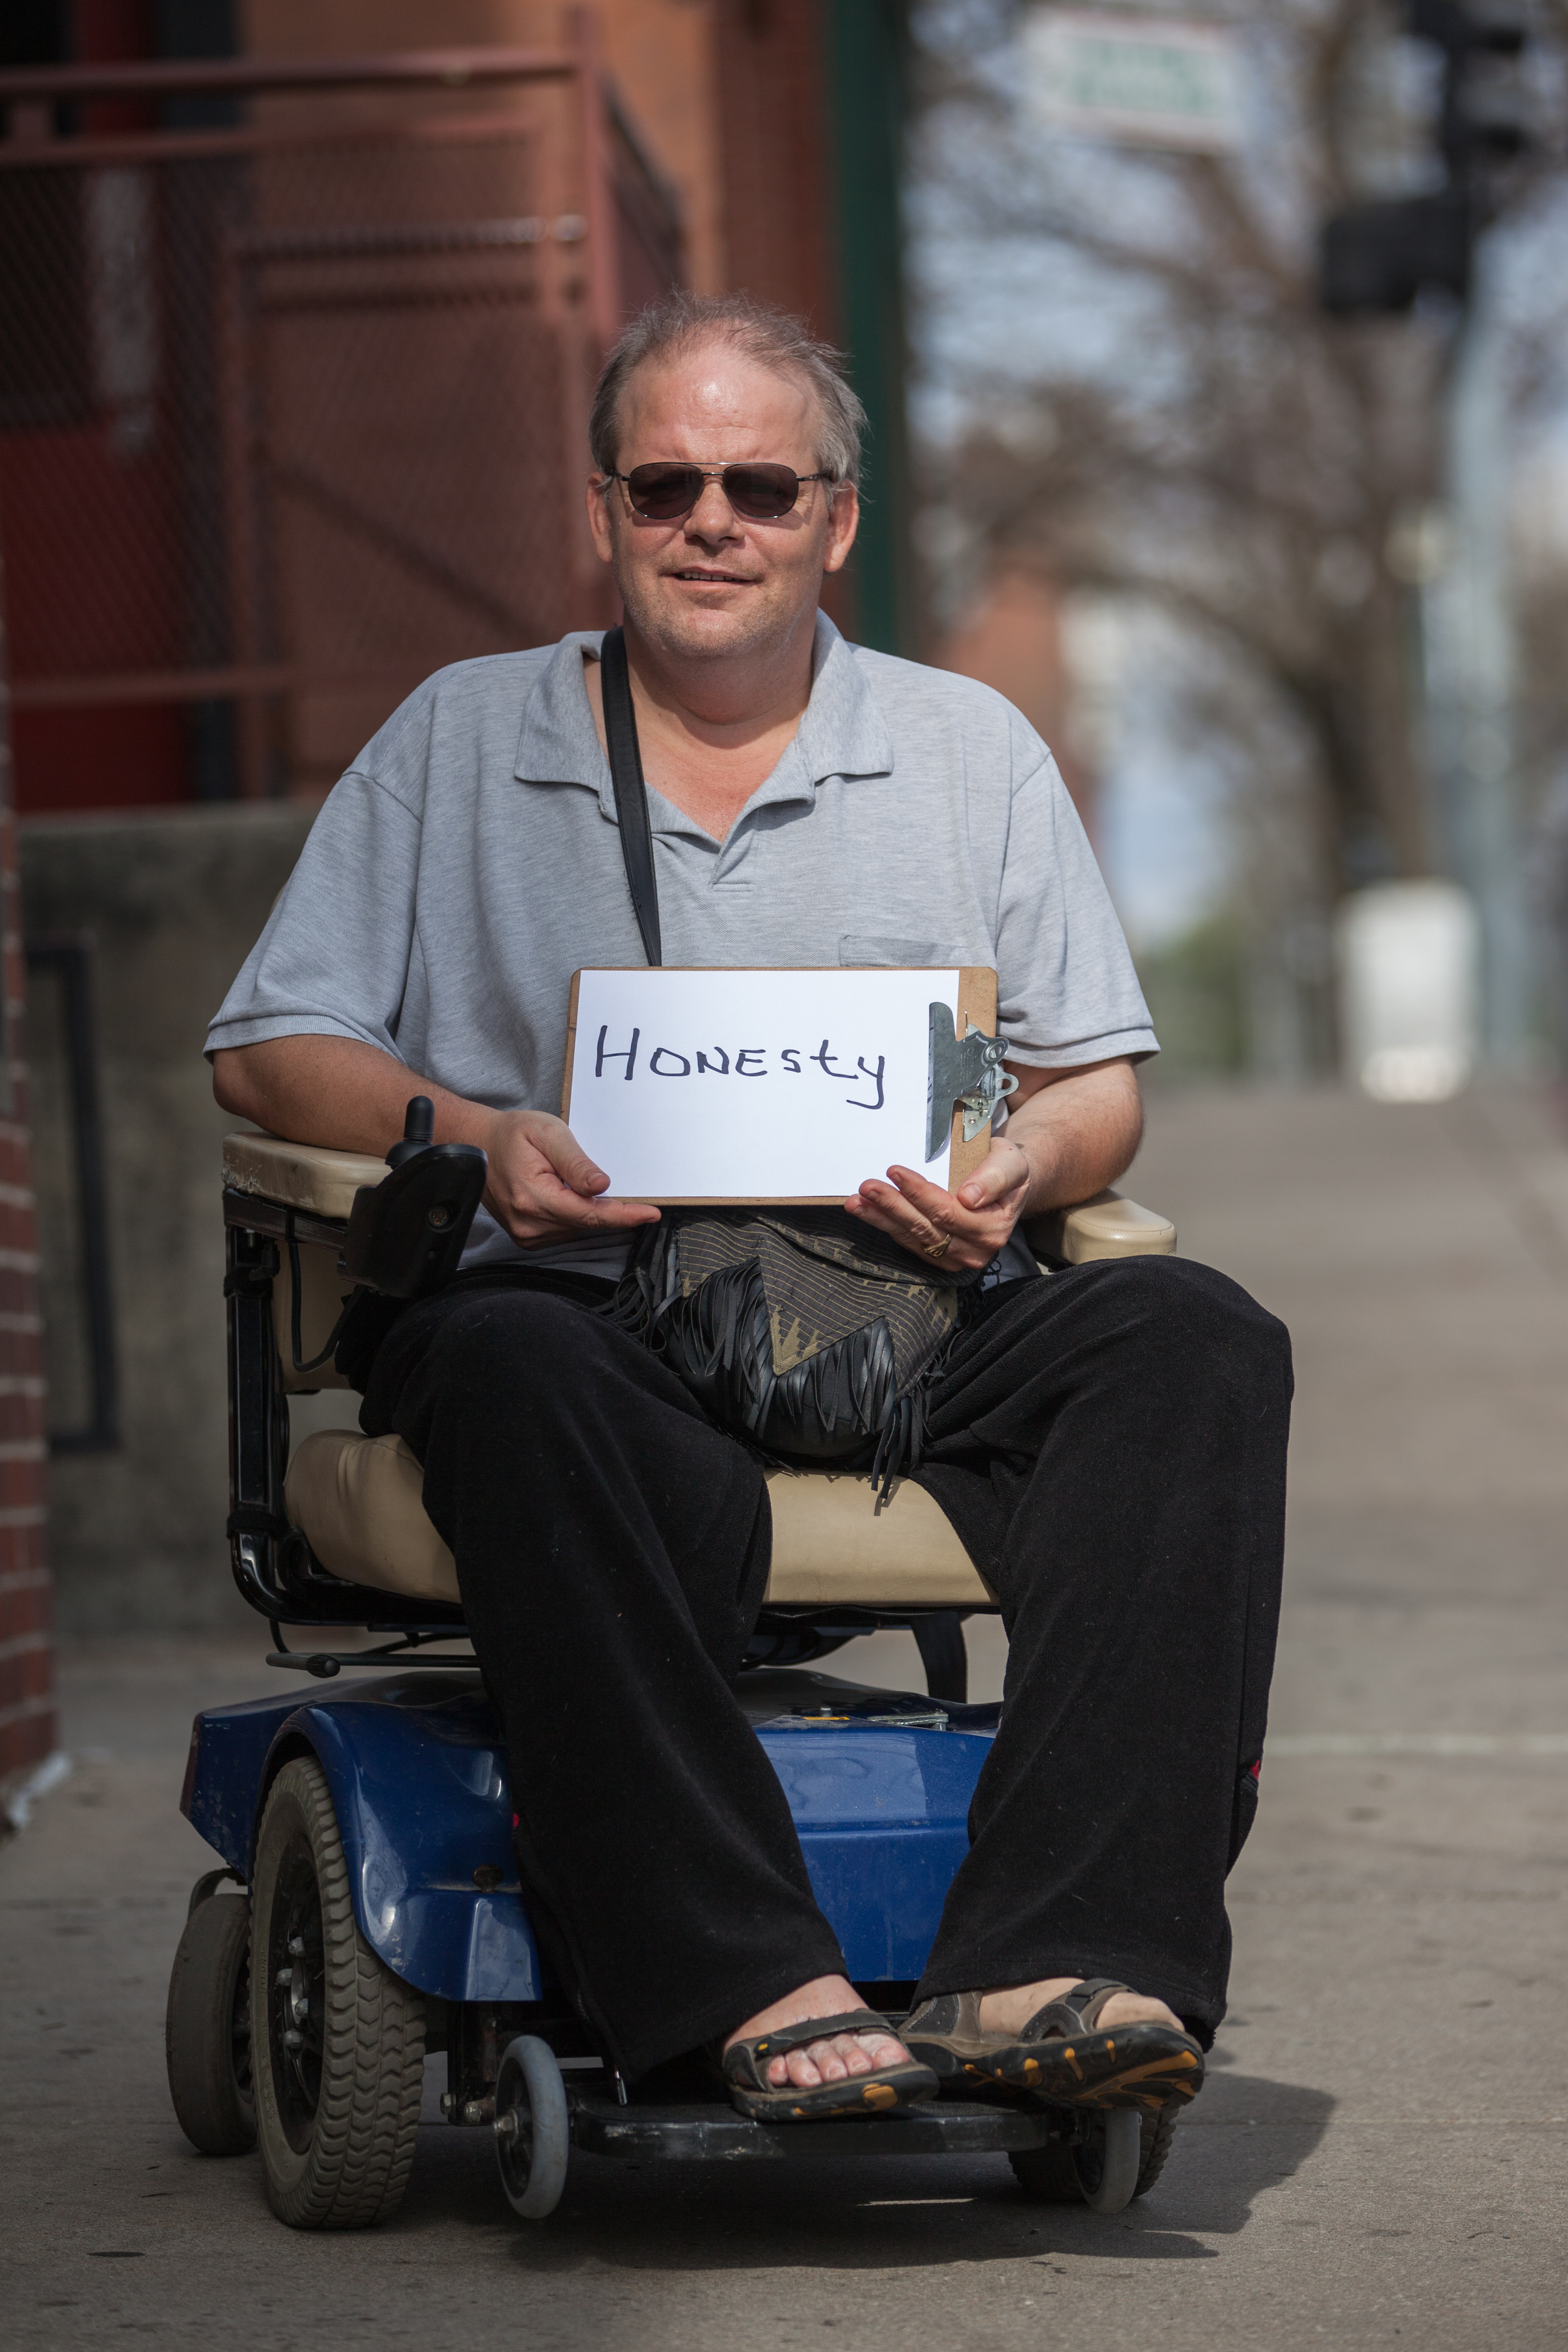 Man sitting a wheelchair holding a sign saying honesty.